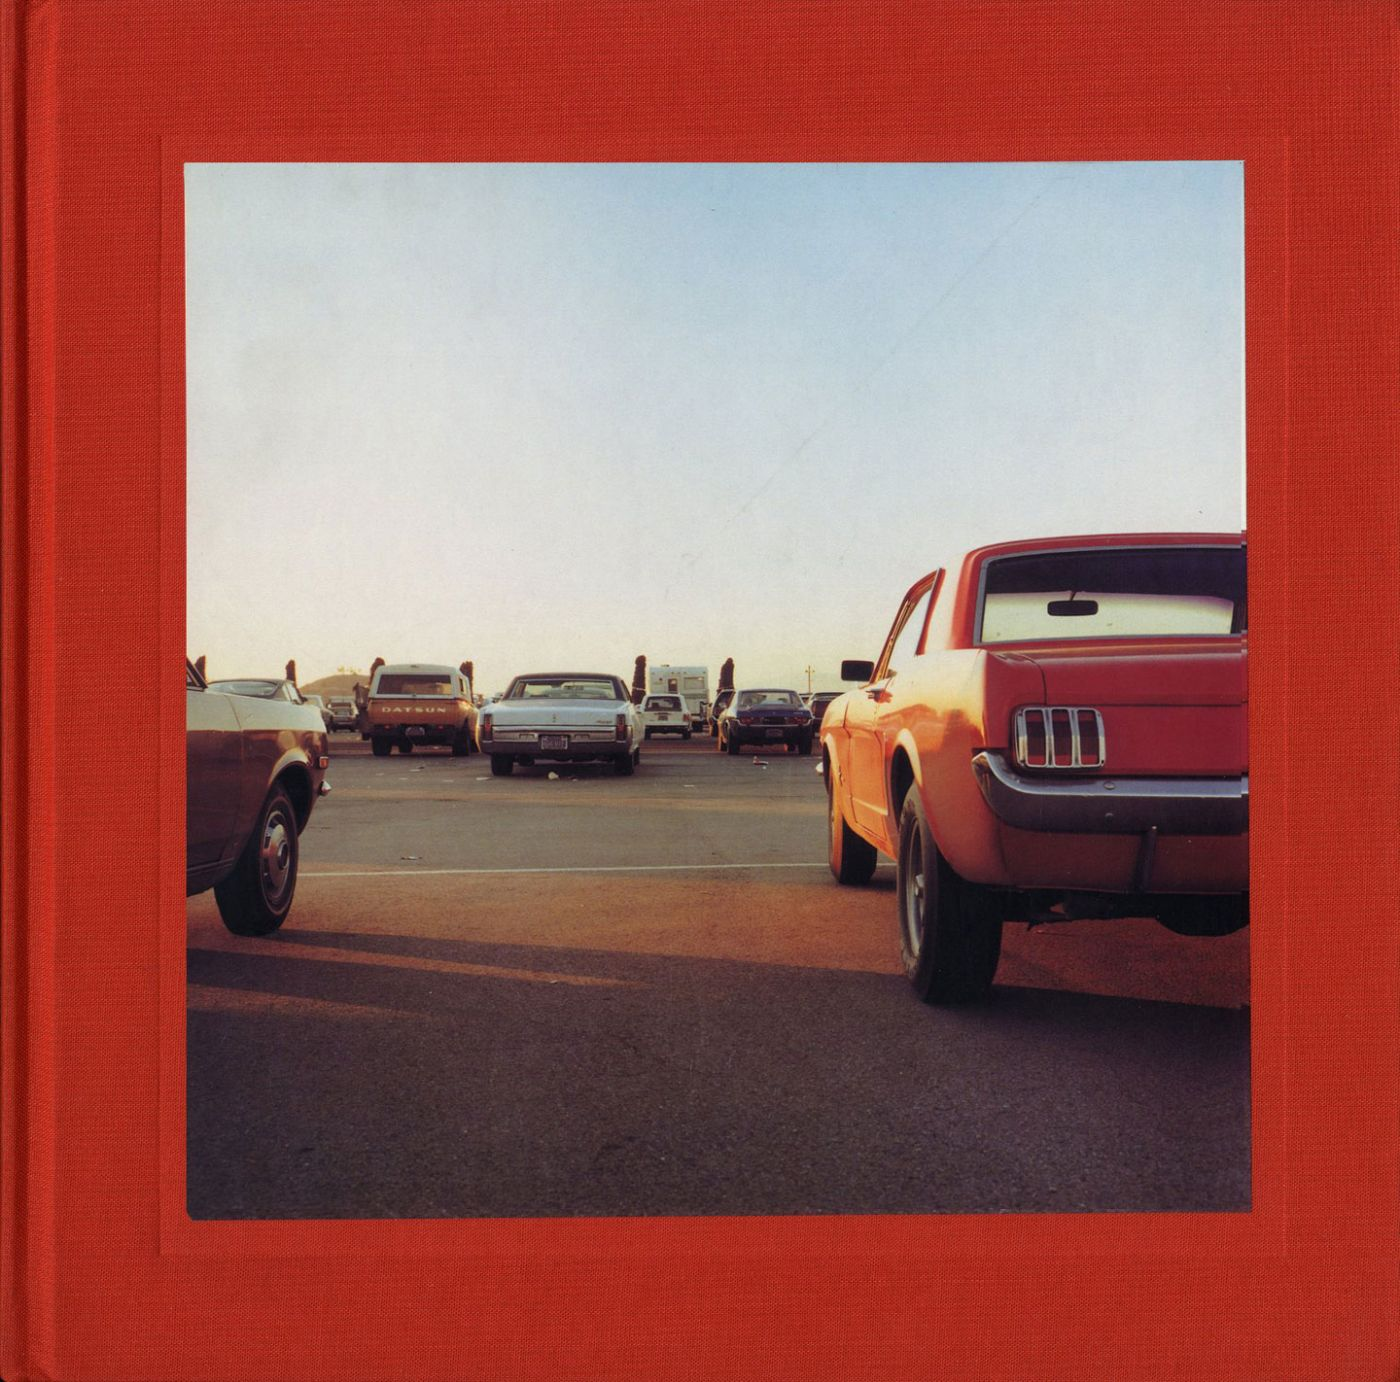 William Eggleston: 2 1/4 (First Edition) (New)